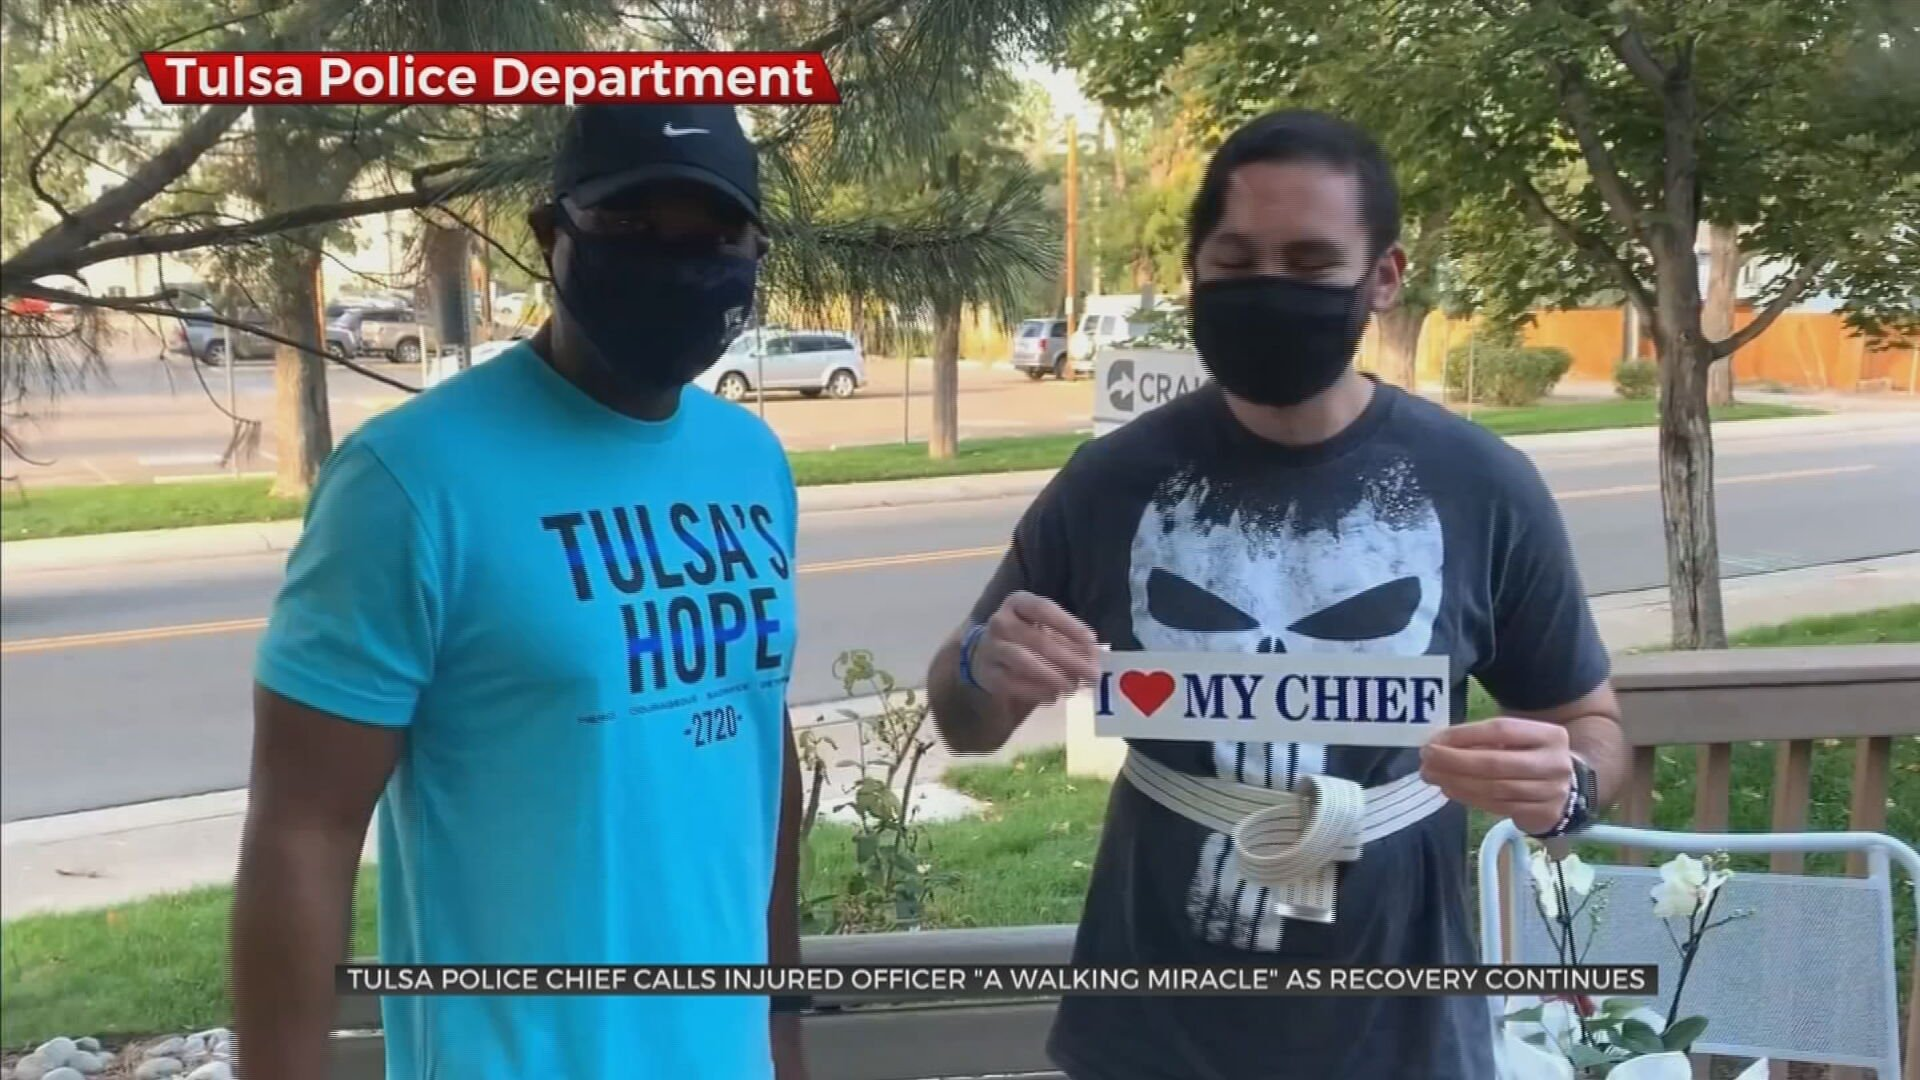 Tulsa Police Chief Calls Injured Officer 'A Walking Miracle'